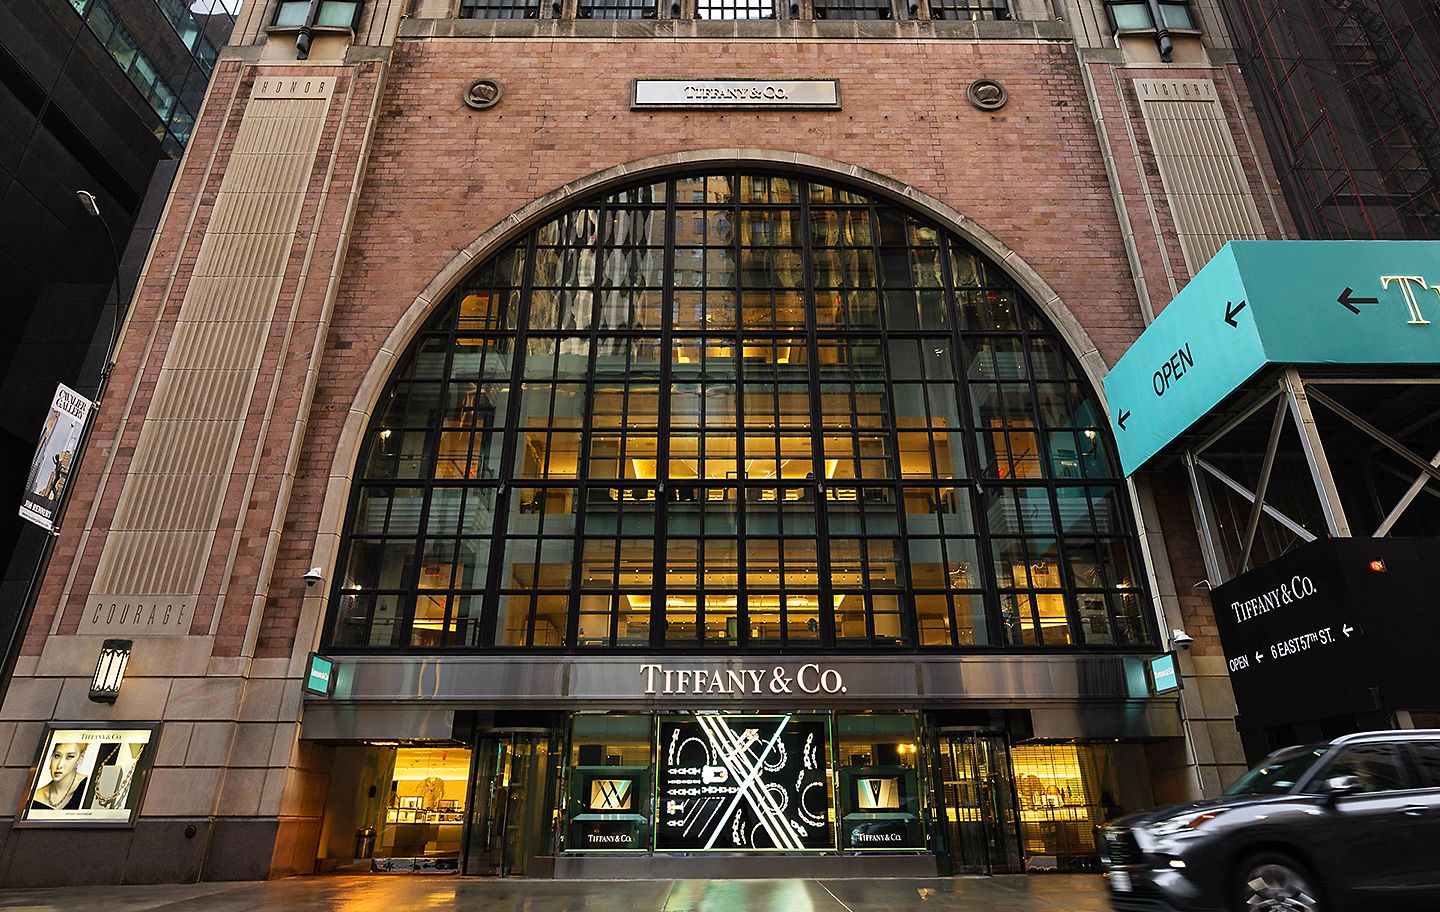 Tiffany & Co. Flagship Next Door